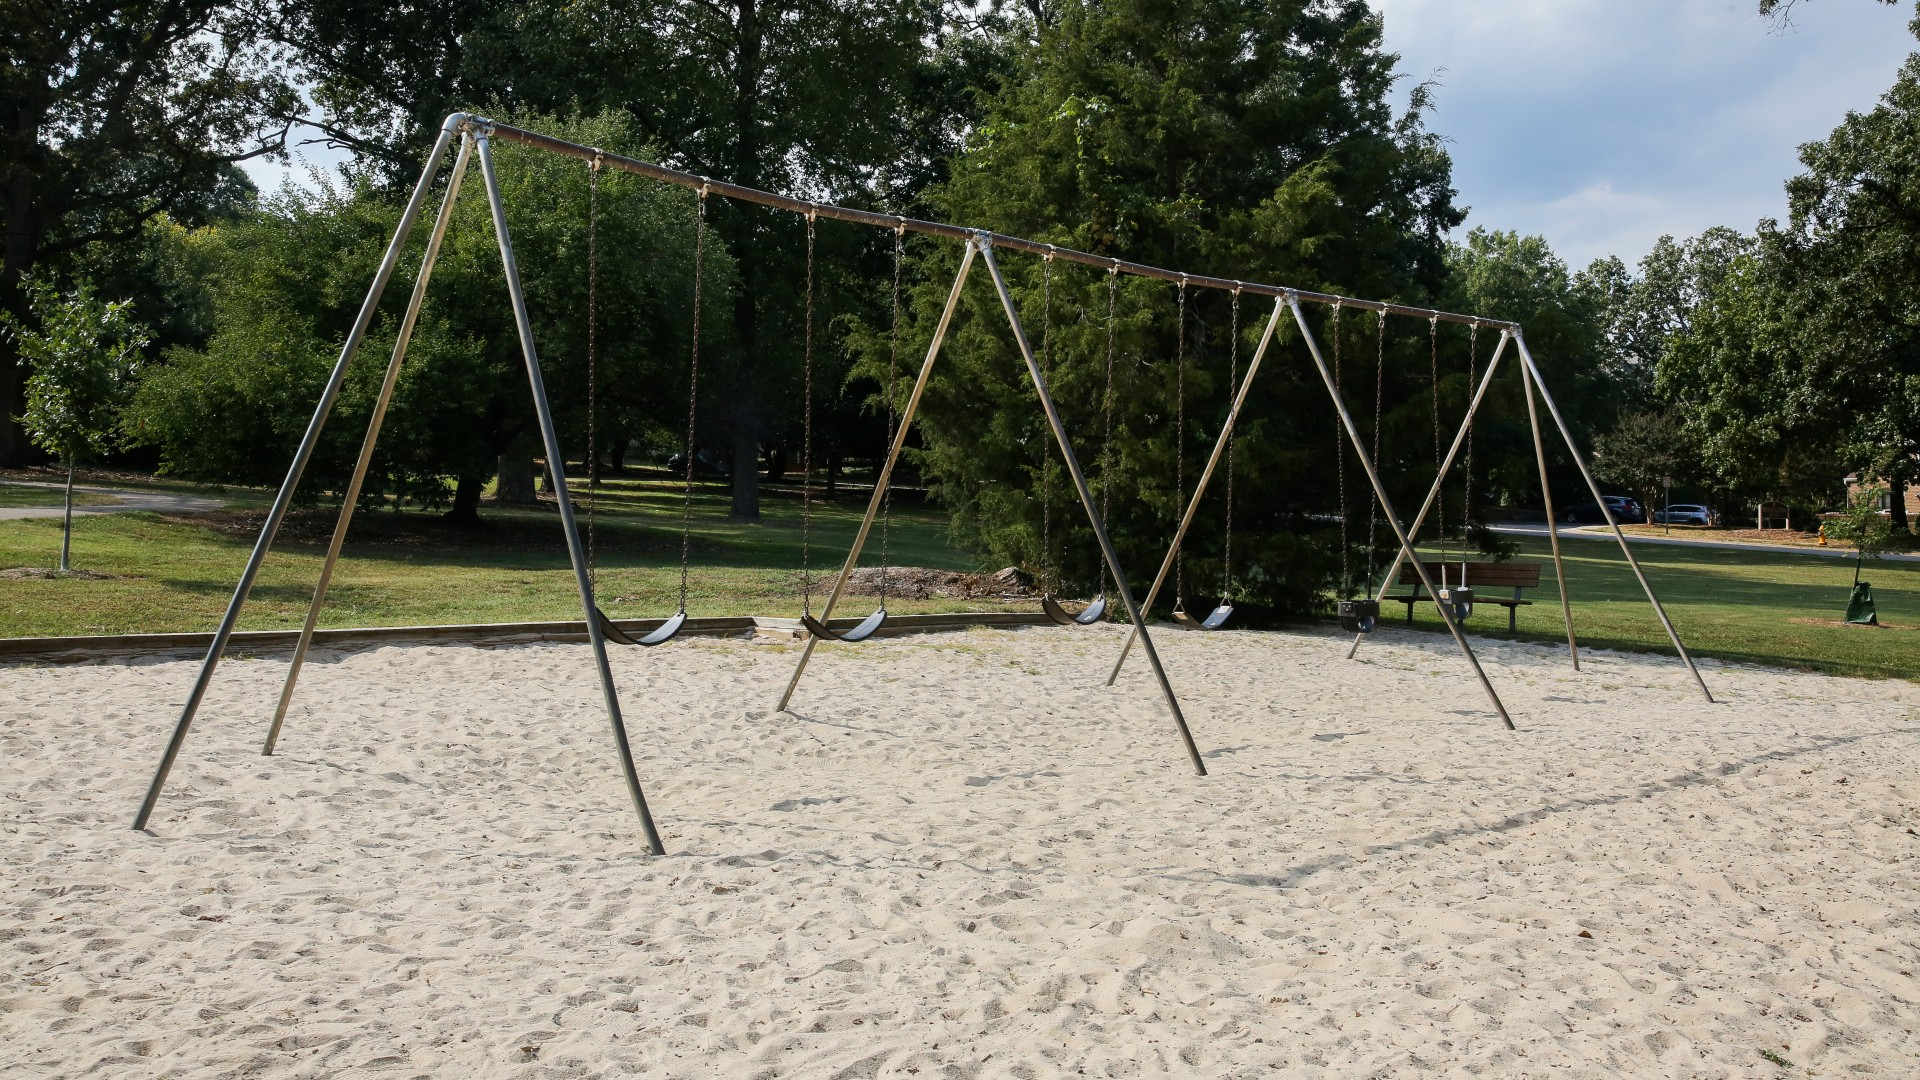 Several swings on a sand surface